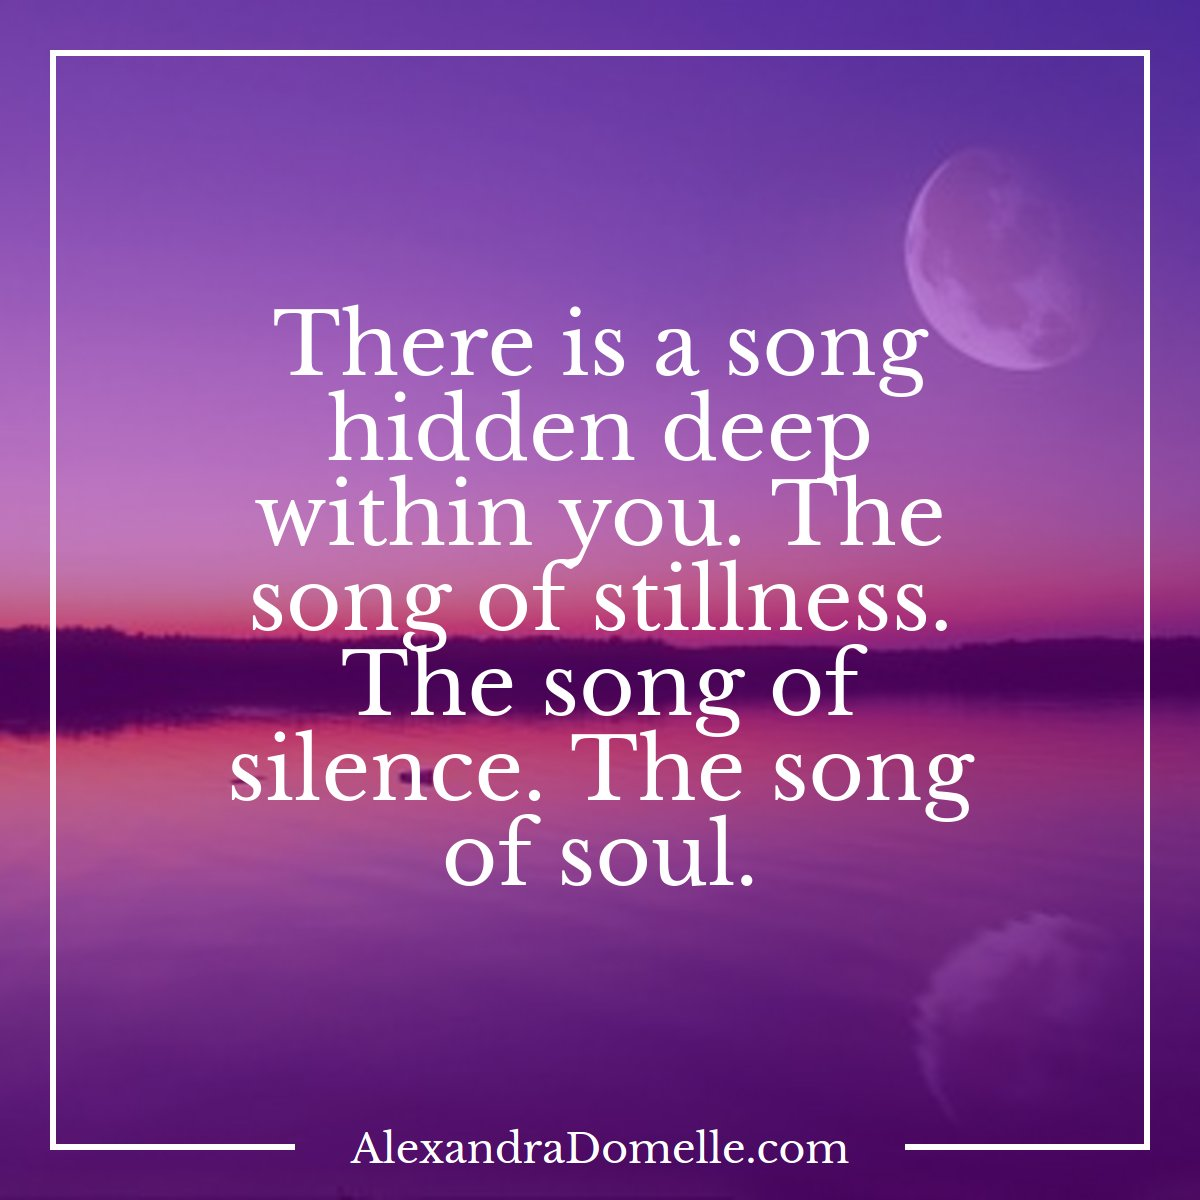 Beautiful, Justin.  There is a song hidden deep within you. The song of #stillness, of #silence, of #soul. - Alexandra Domelle<br>http://pic.twitter.com/QAkbF1Wnw6